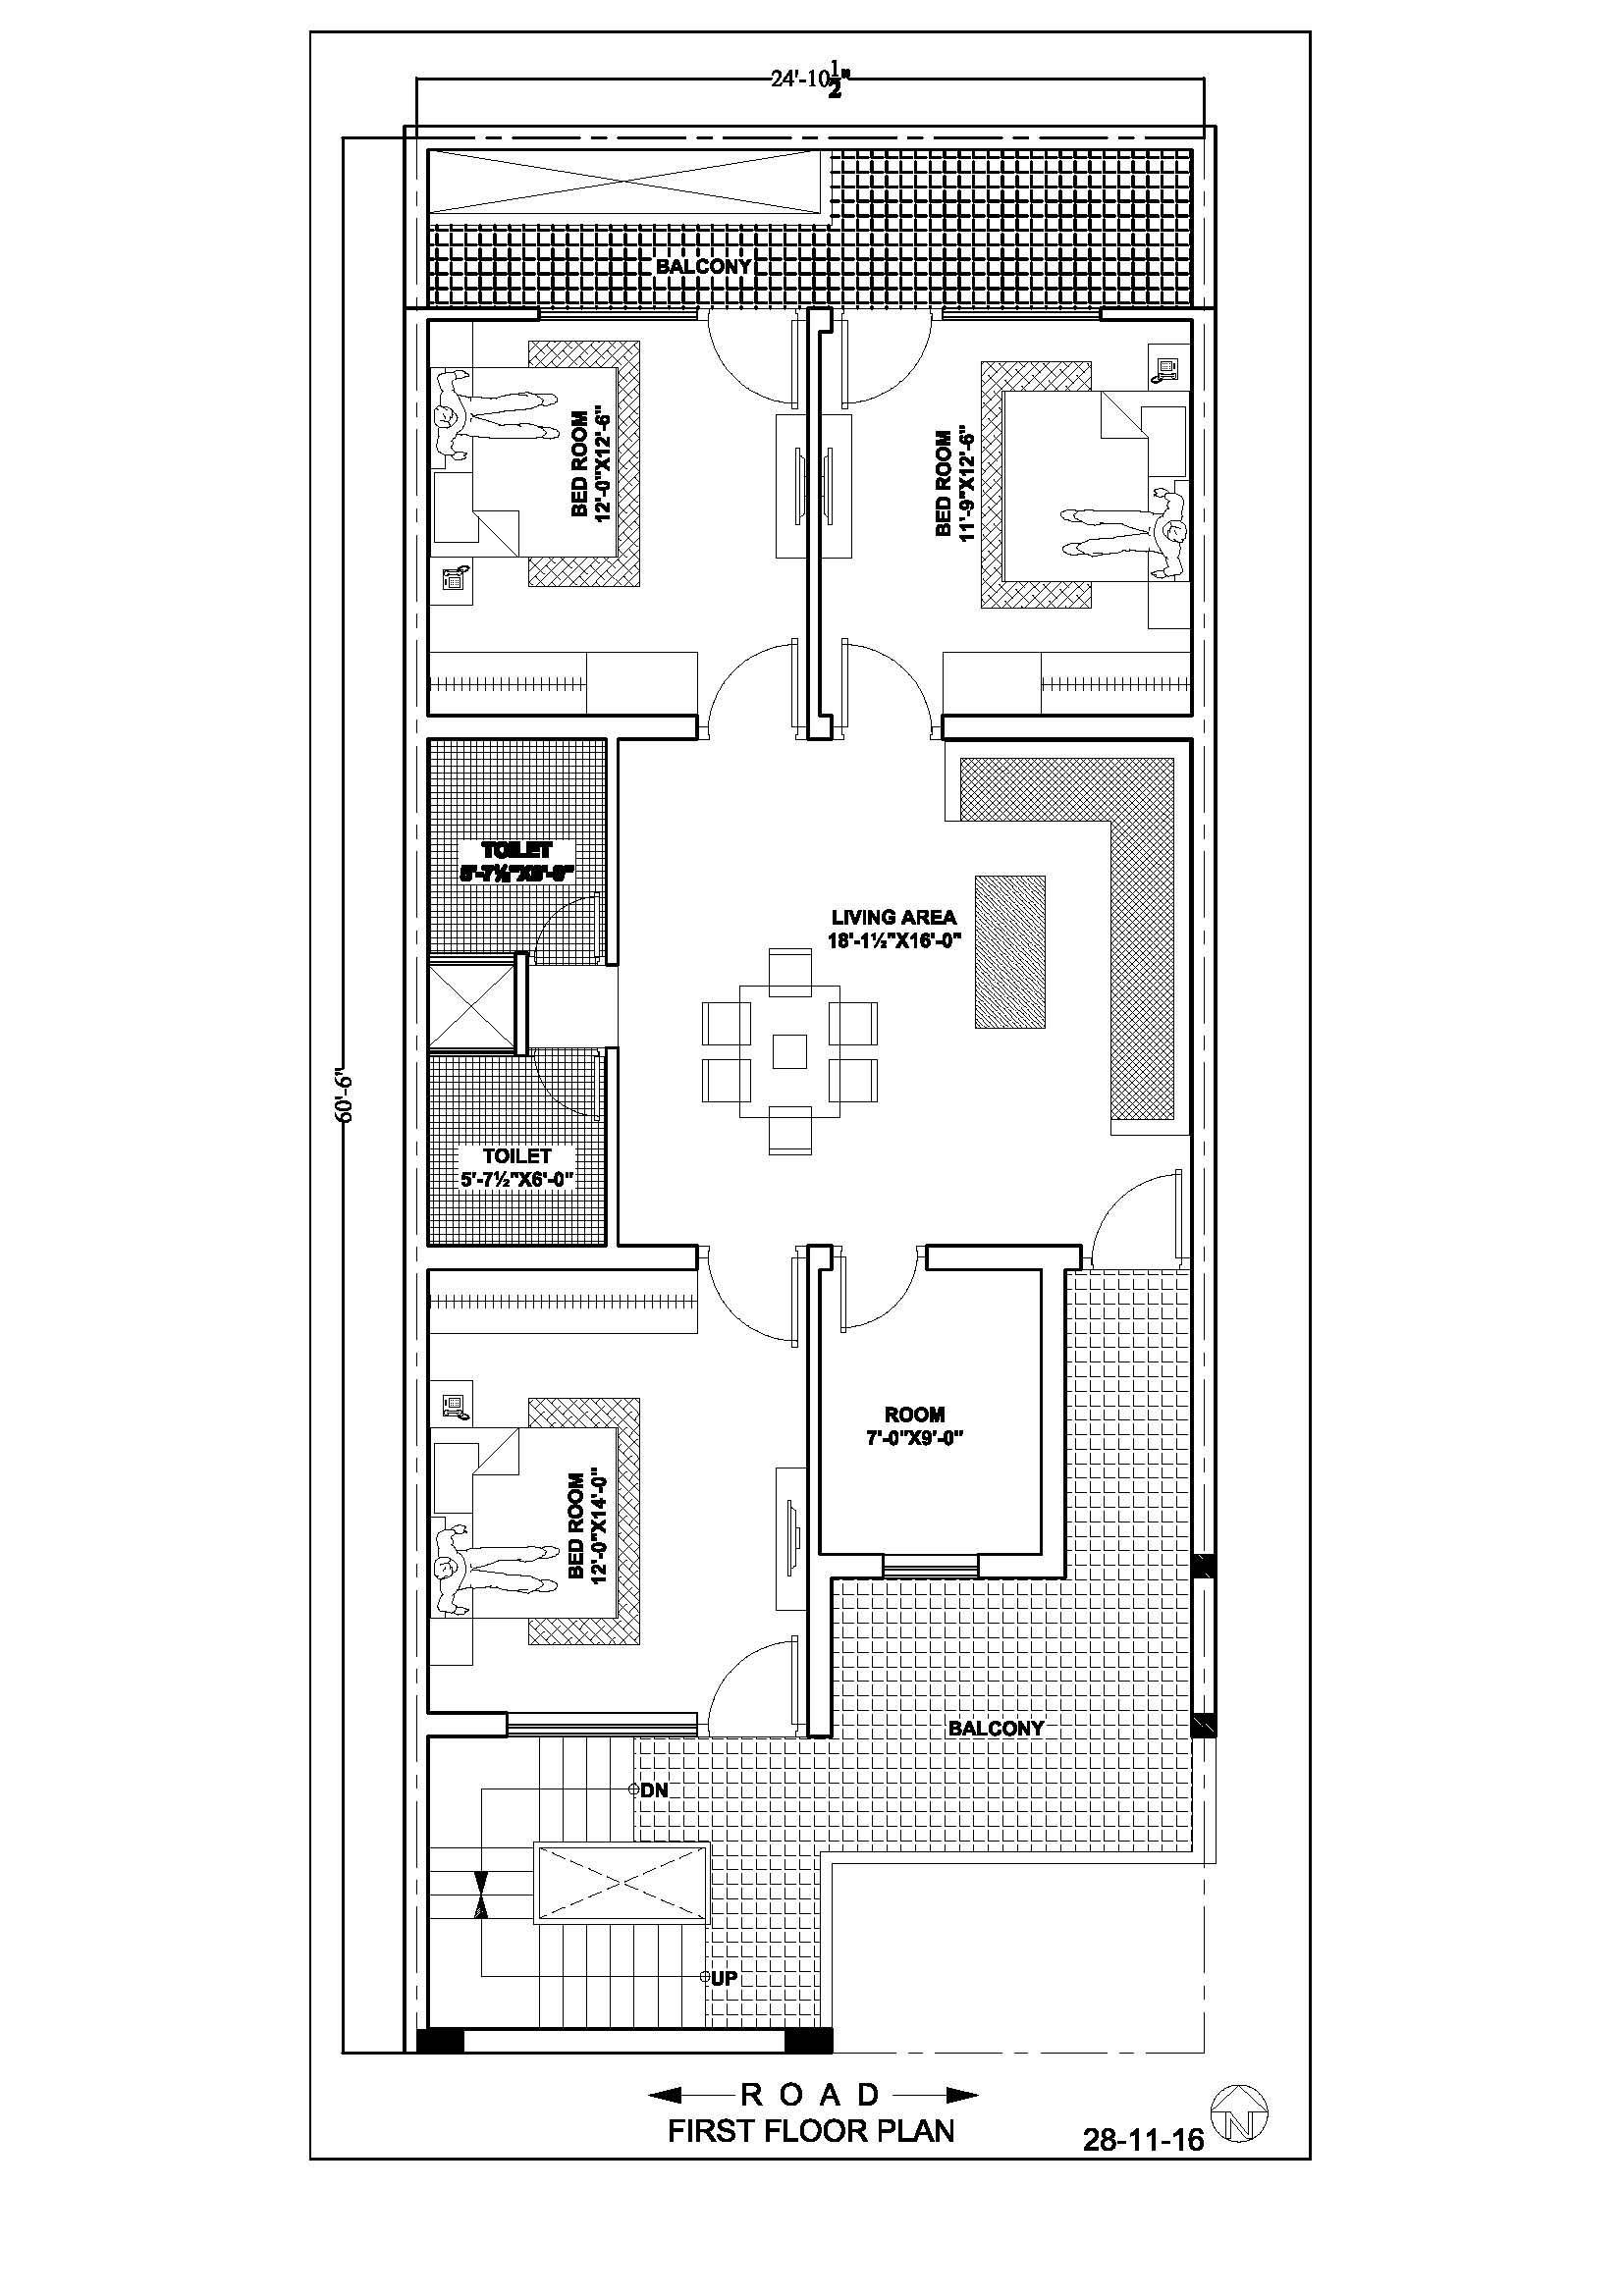 House Plan Designer Software 2021 Home Design Floor Plans Model House Plan Indian House Plans